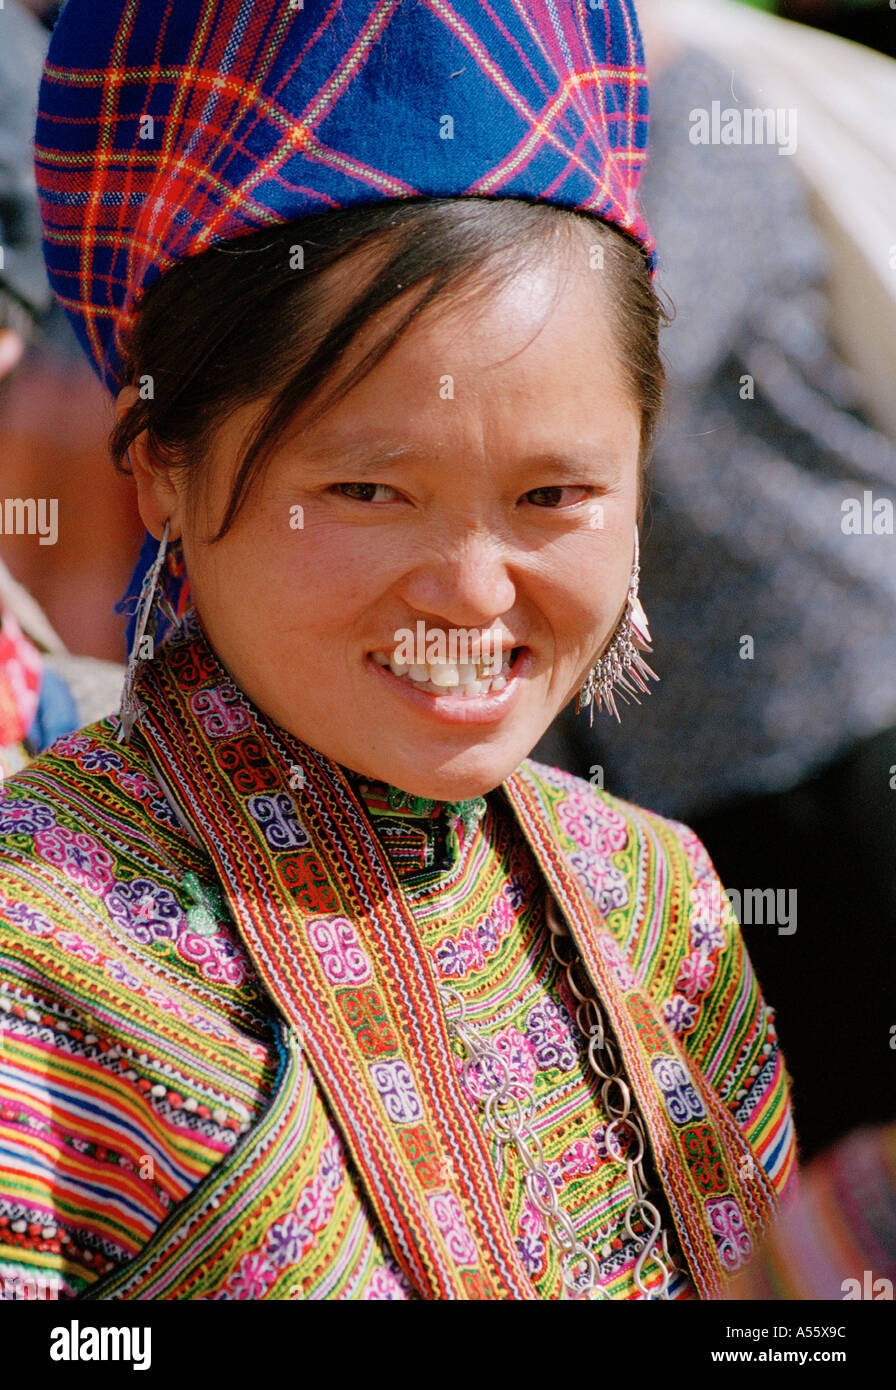 Portrait of a woman of the Hmong Tribe in traditional dress at the market in BacHa Northern Vietnam - Stock Image